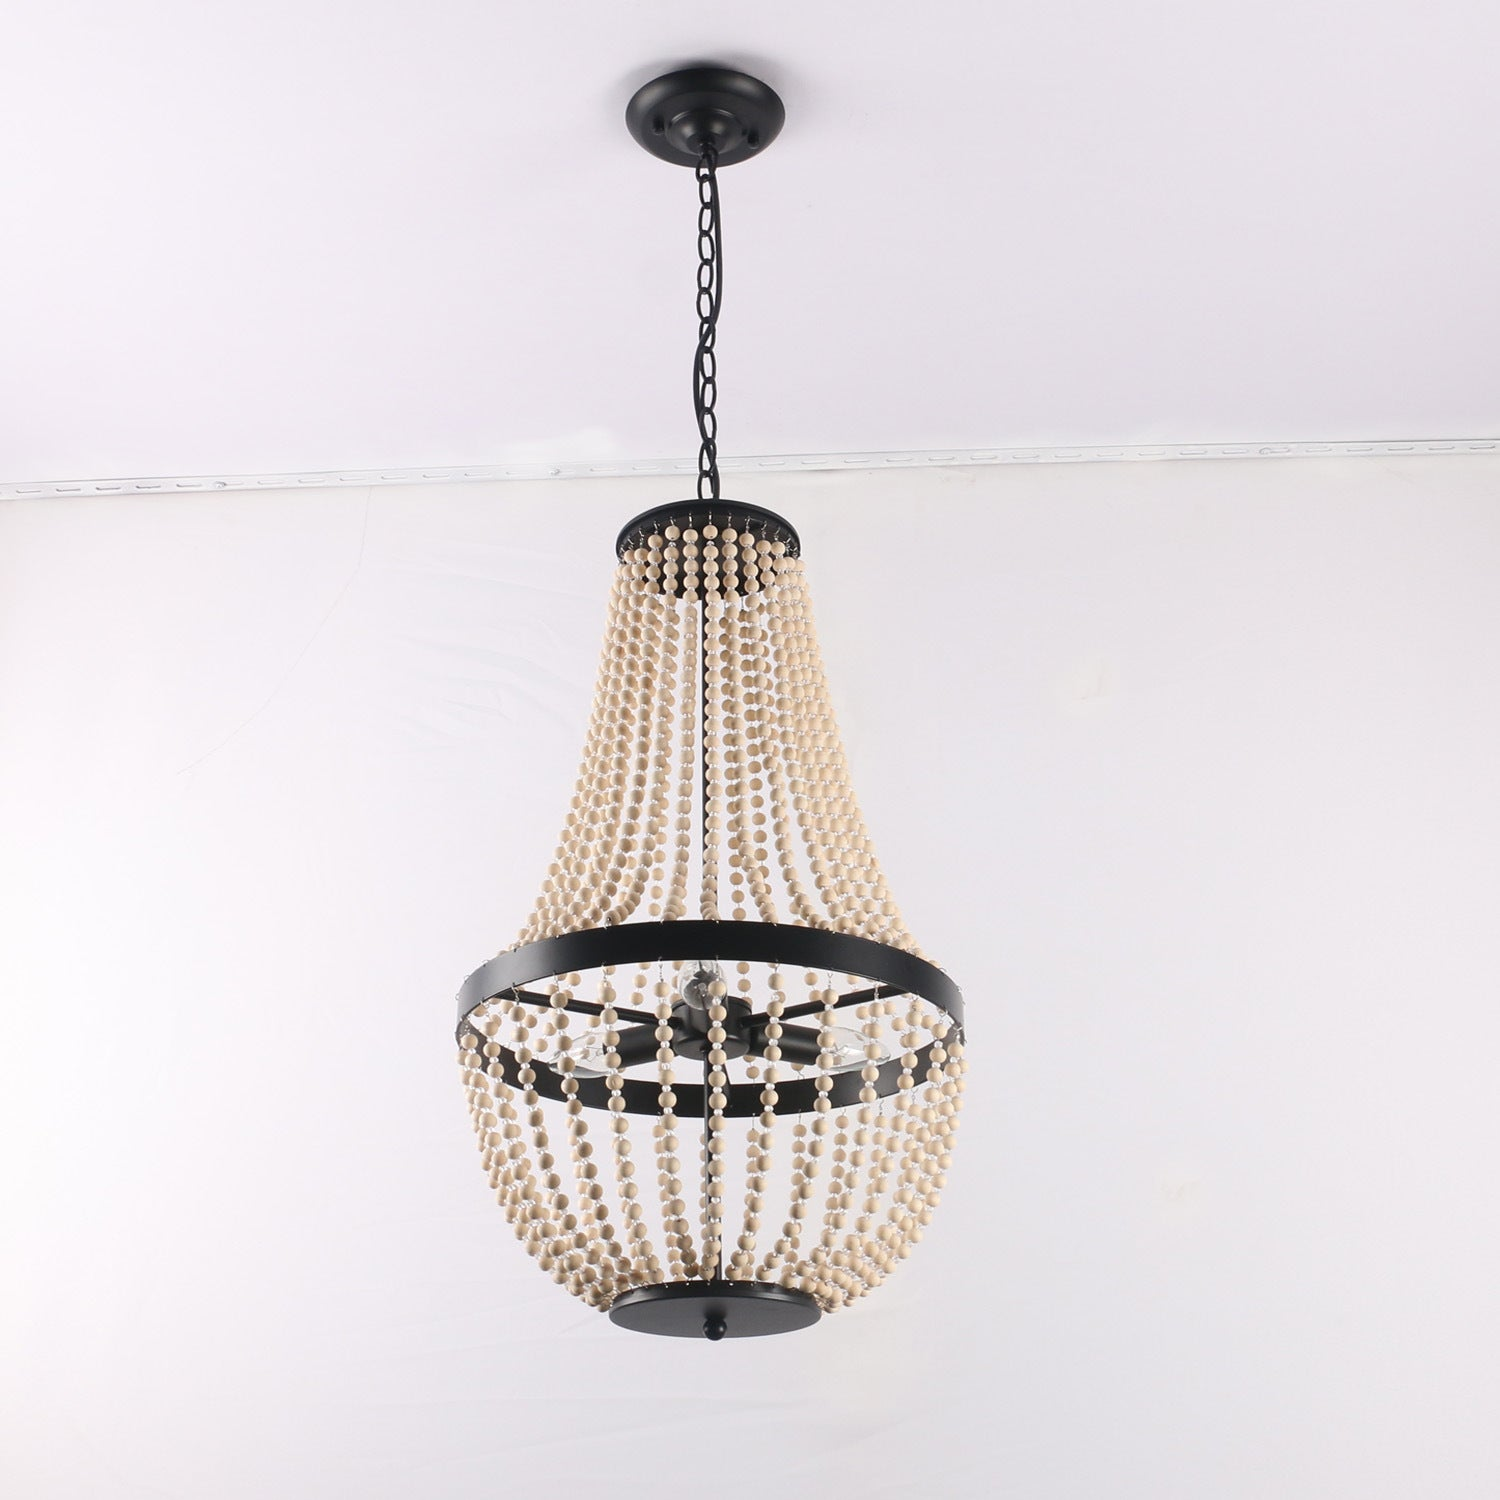 Decorative Wood Beaded Empire Pendant Light